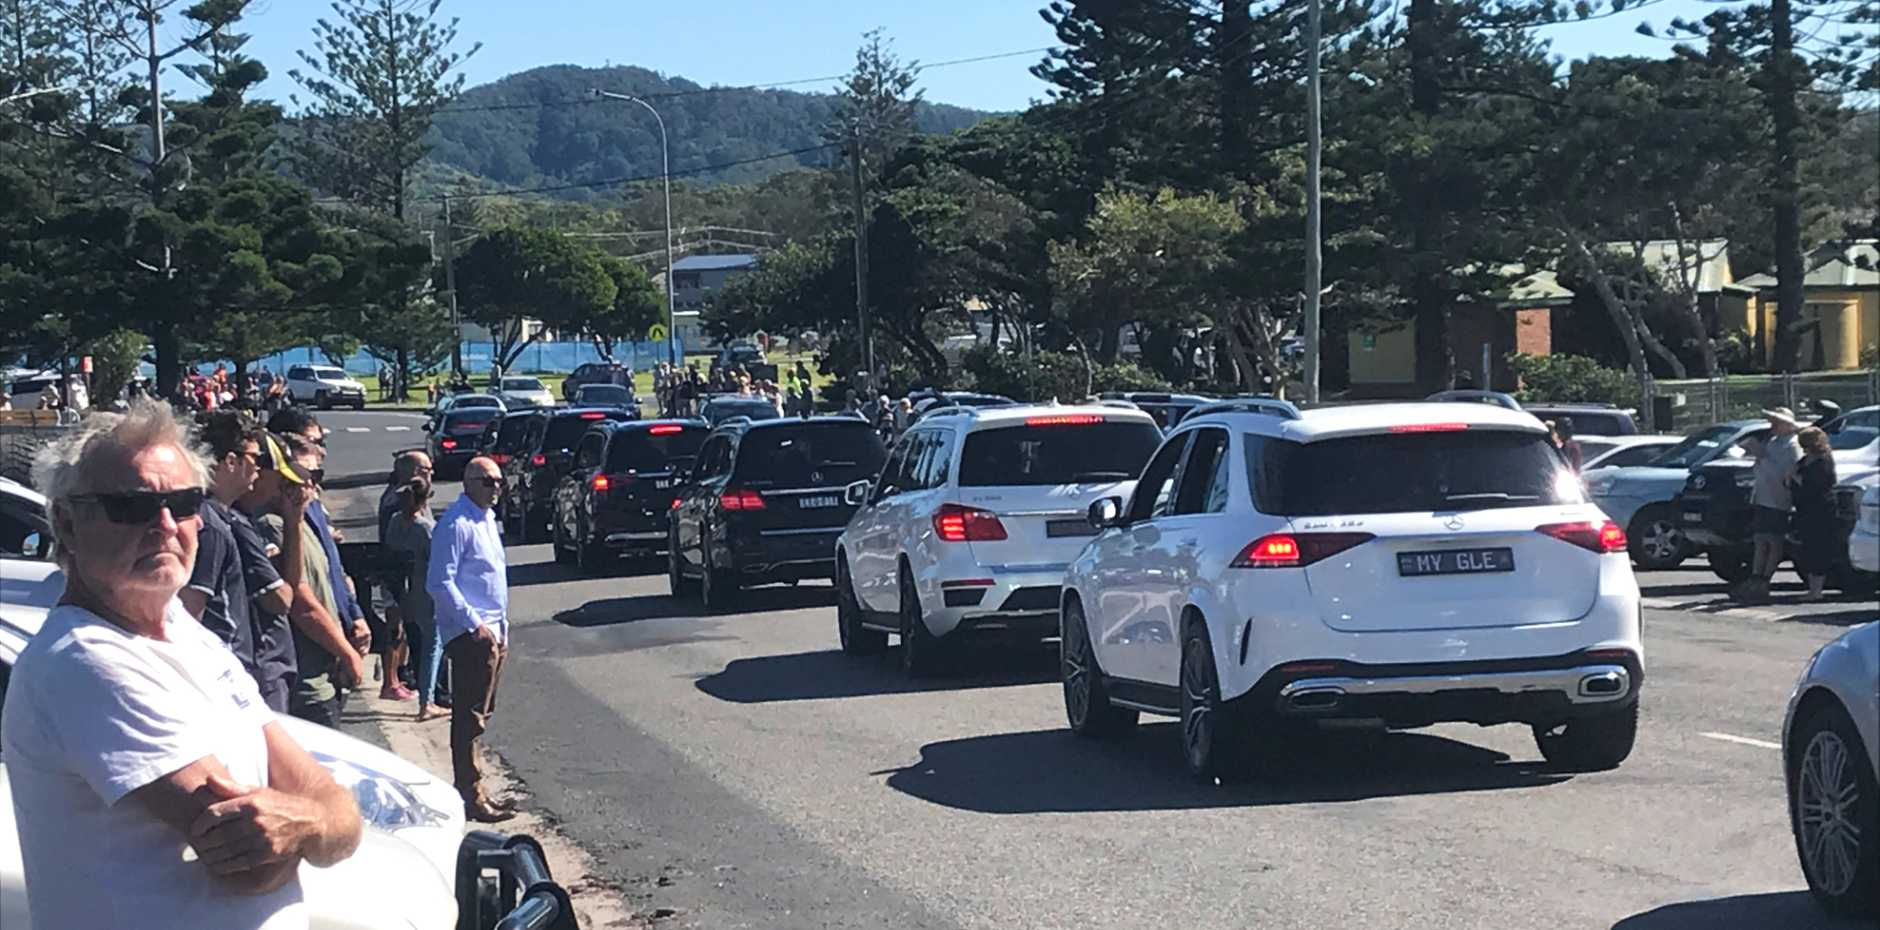 Due to Covid-19 restrictions on funerals, Woolgoolga residents have today lined the streets while social distancing to farewell Dr Amarjit Singh More.